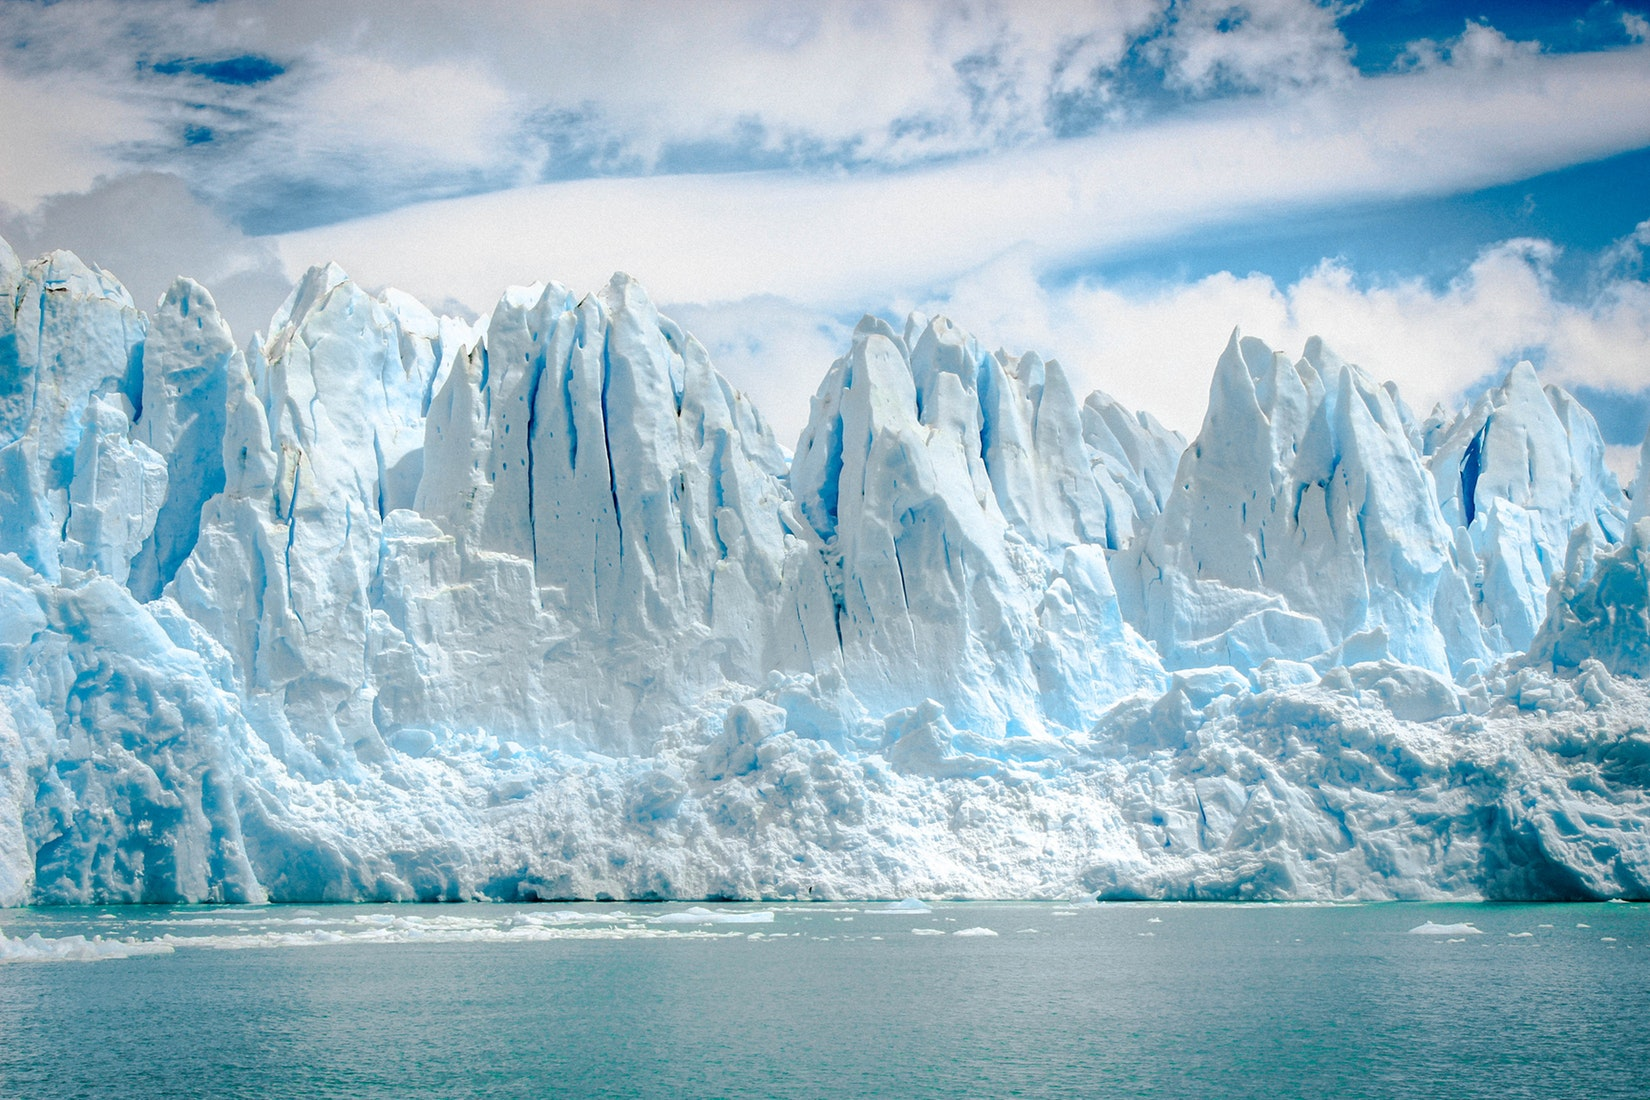 The Earth's oceans are warming 40% faster than previously thought. Credit Unsplash.